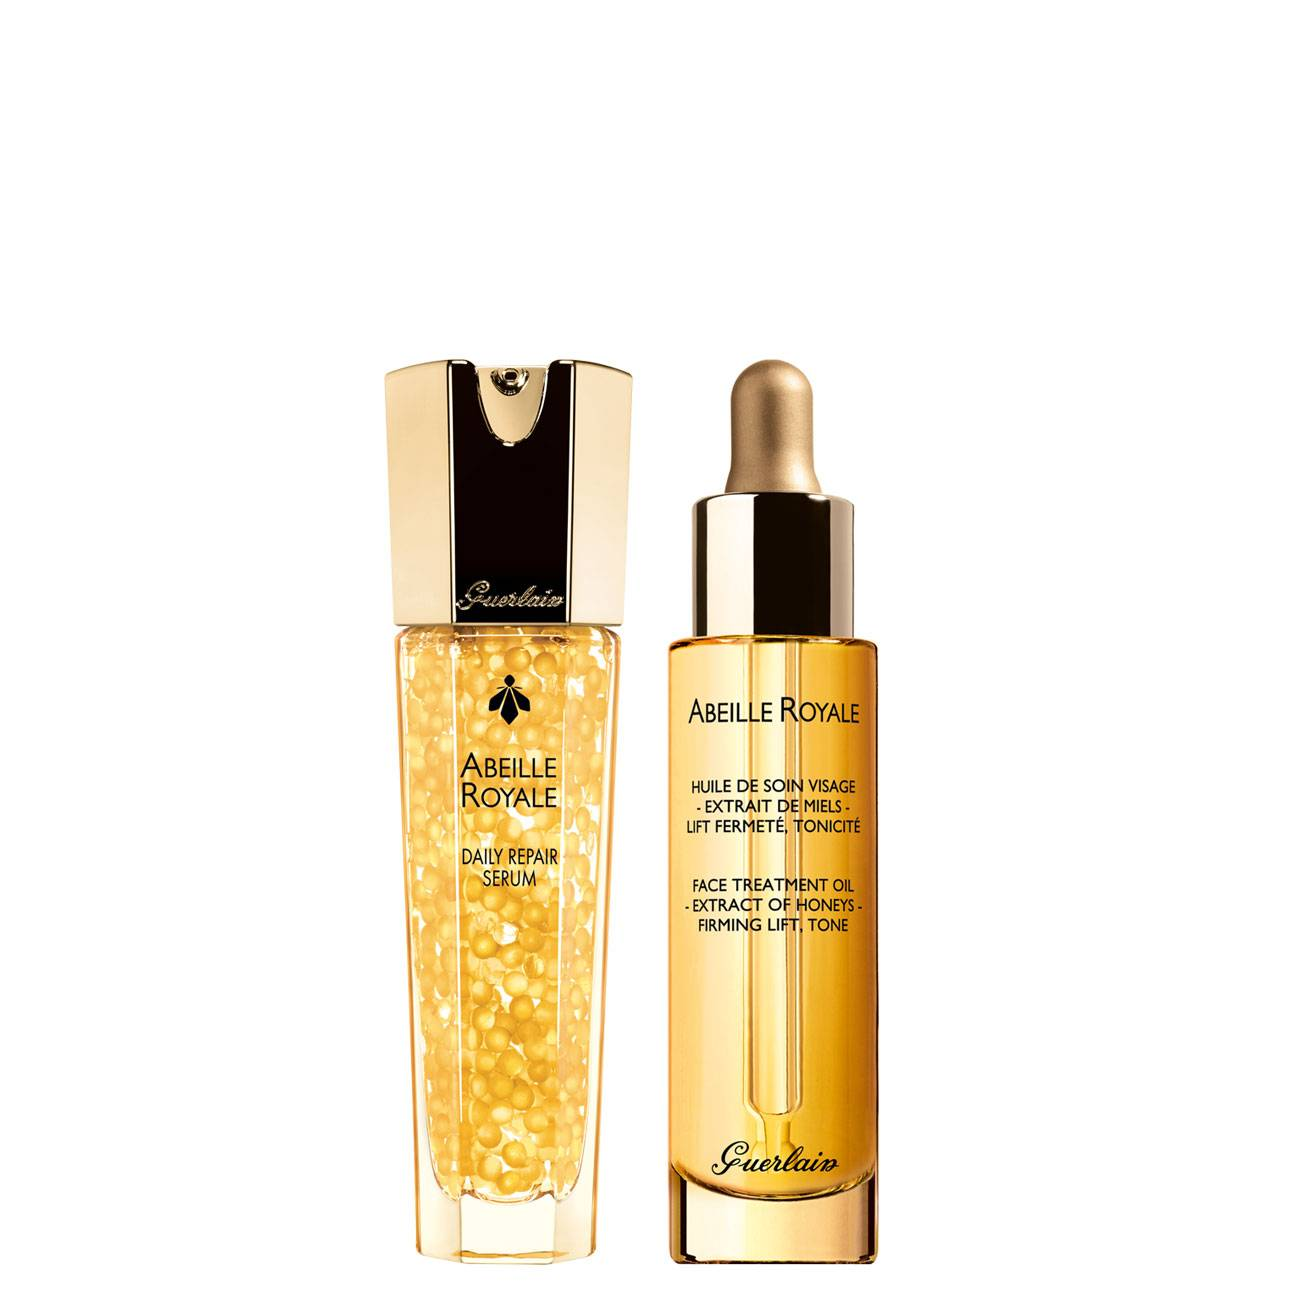 ABEILLE ROYALE SET 200 ML